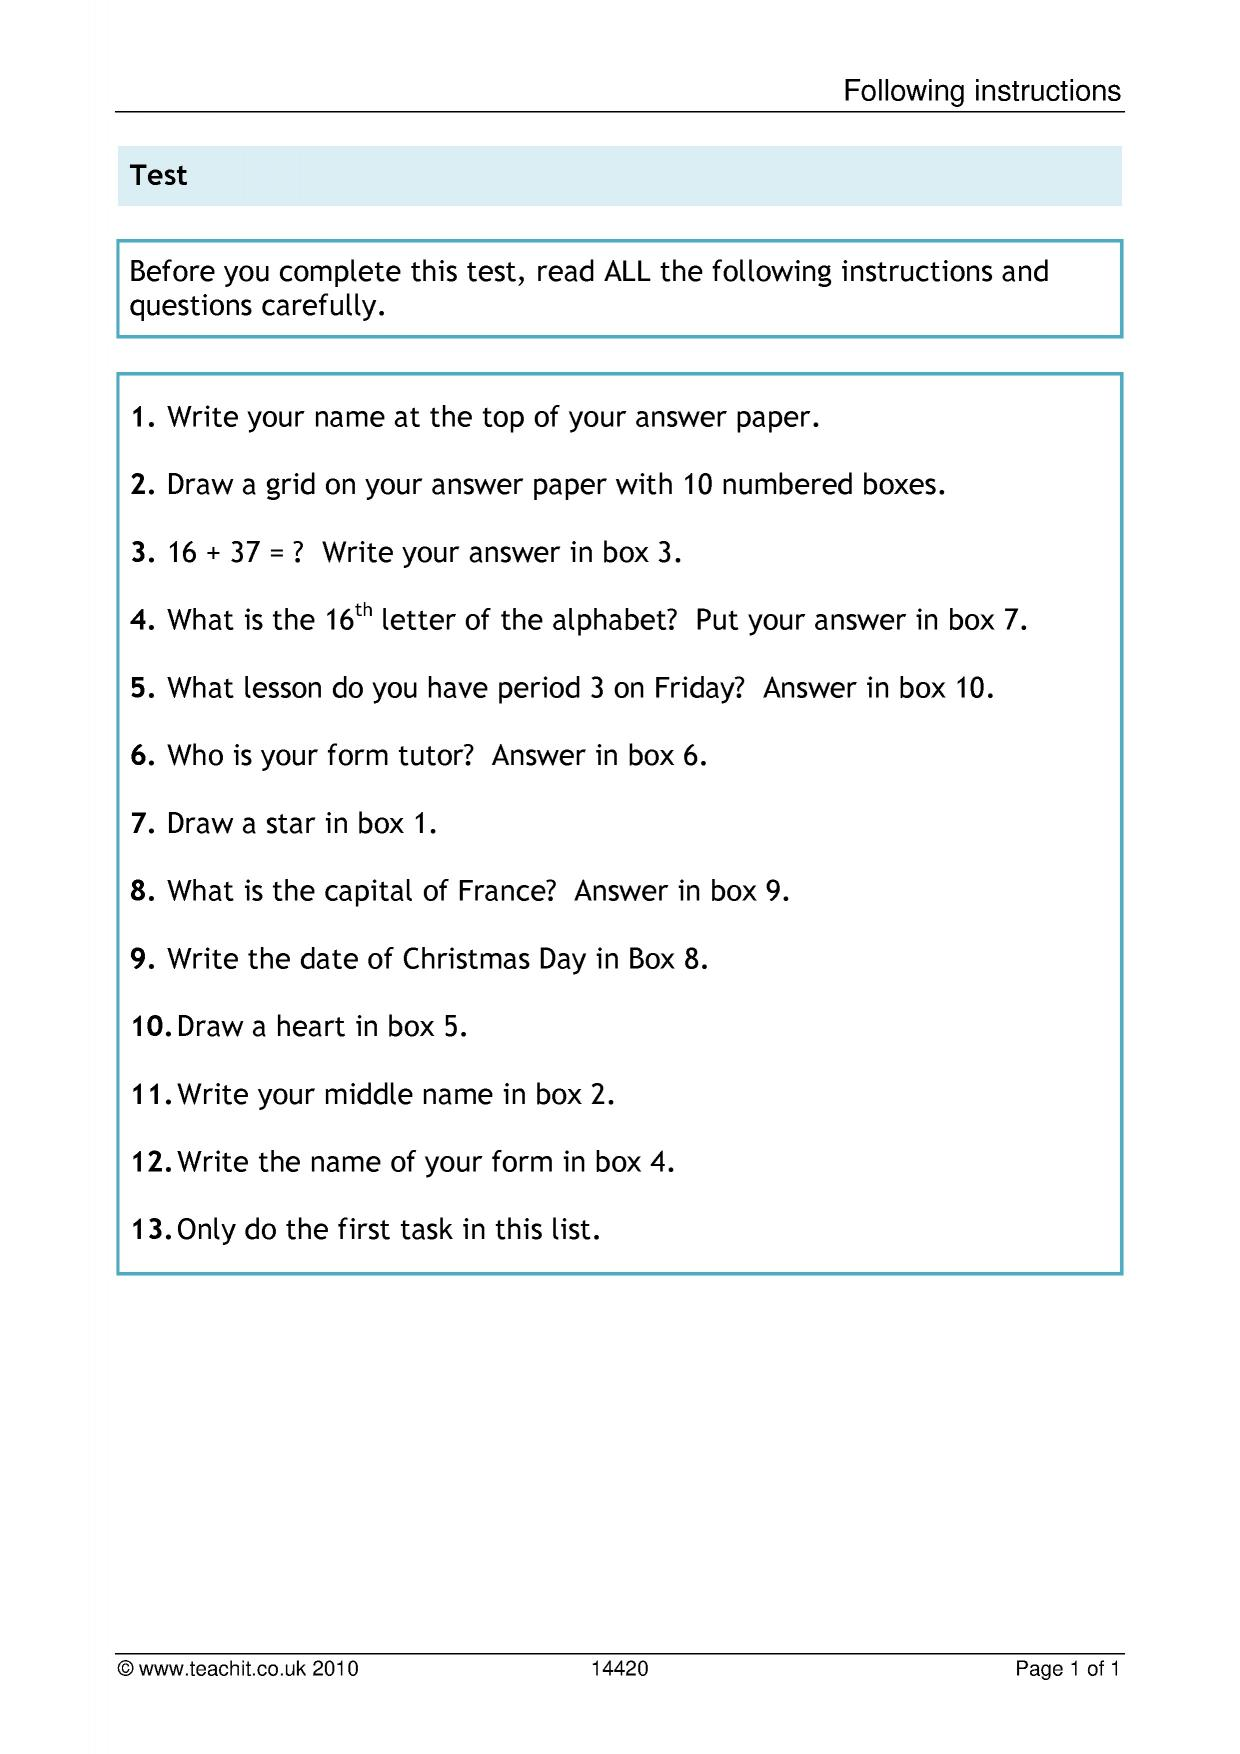 English Comprehension Passages With Questions And Answers